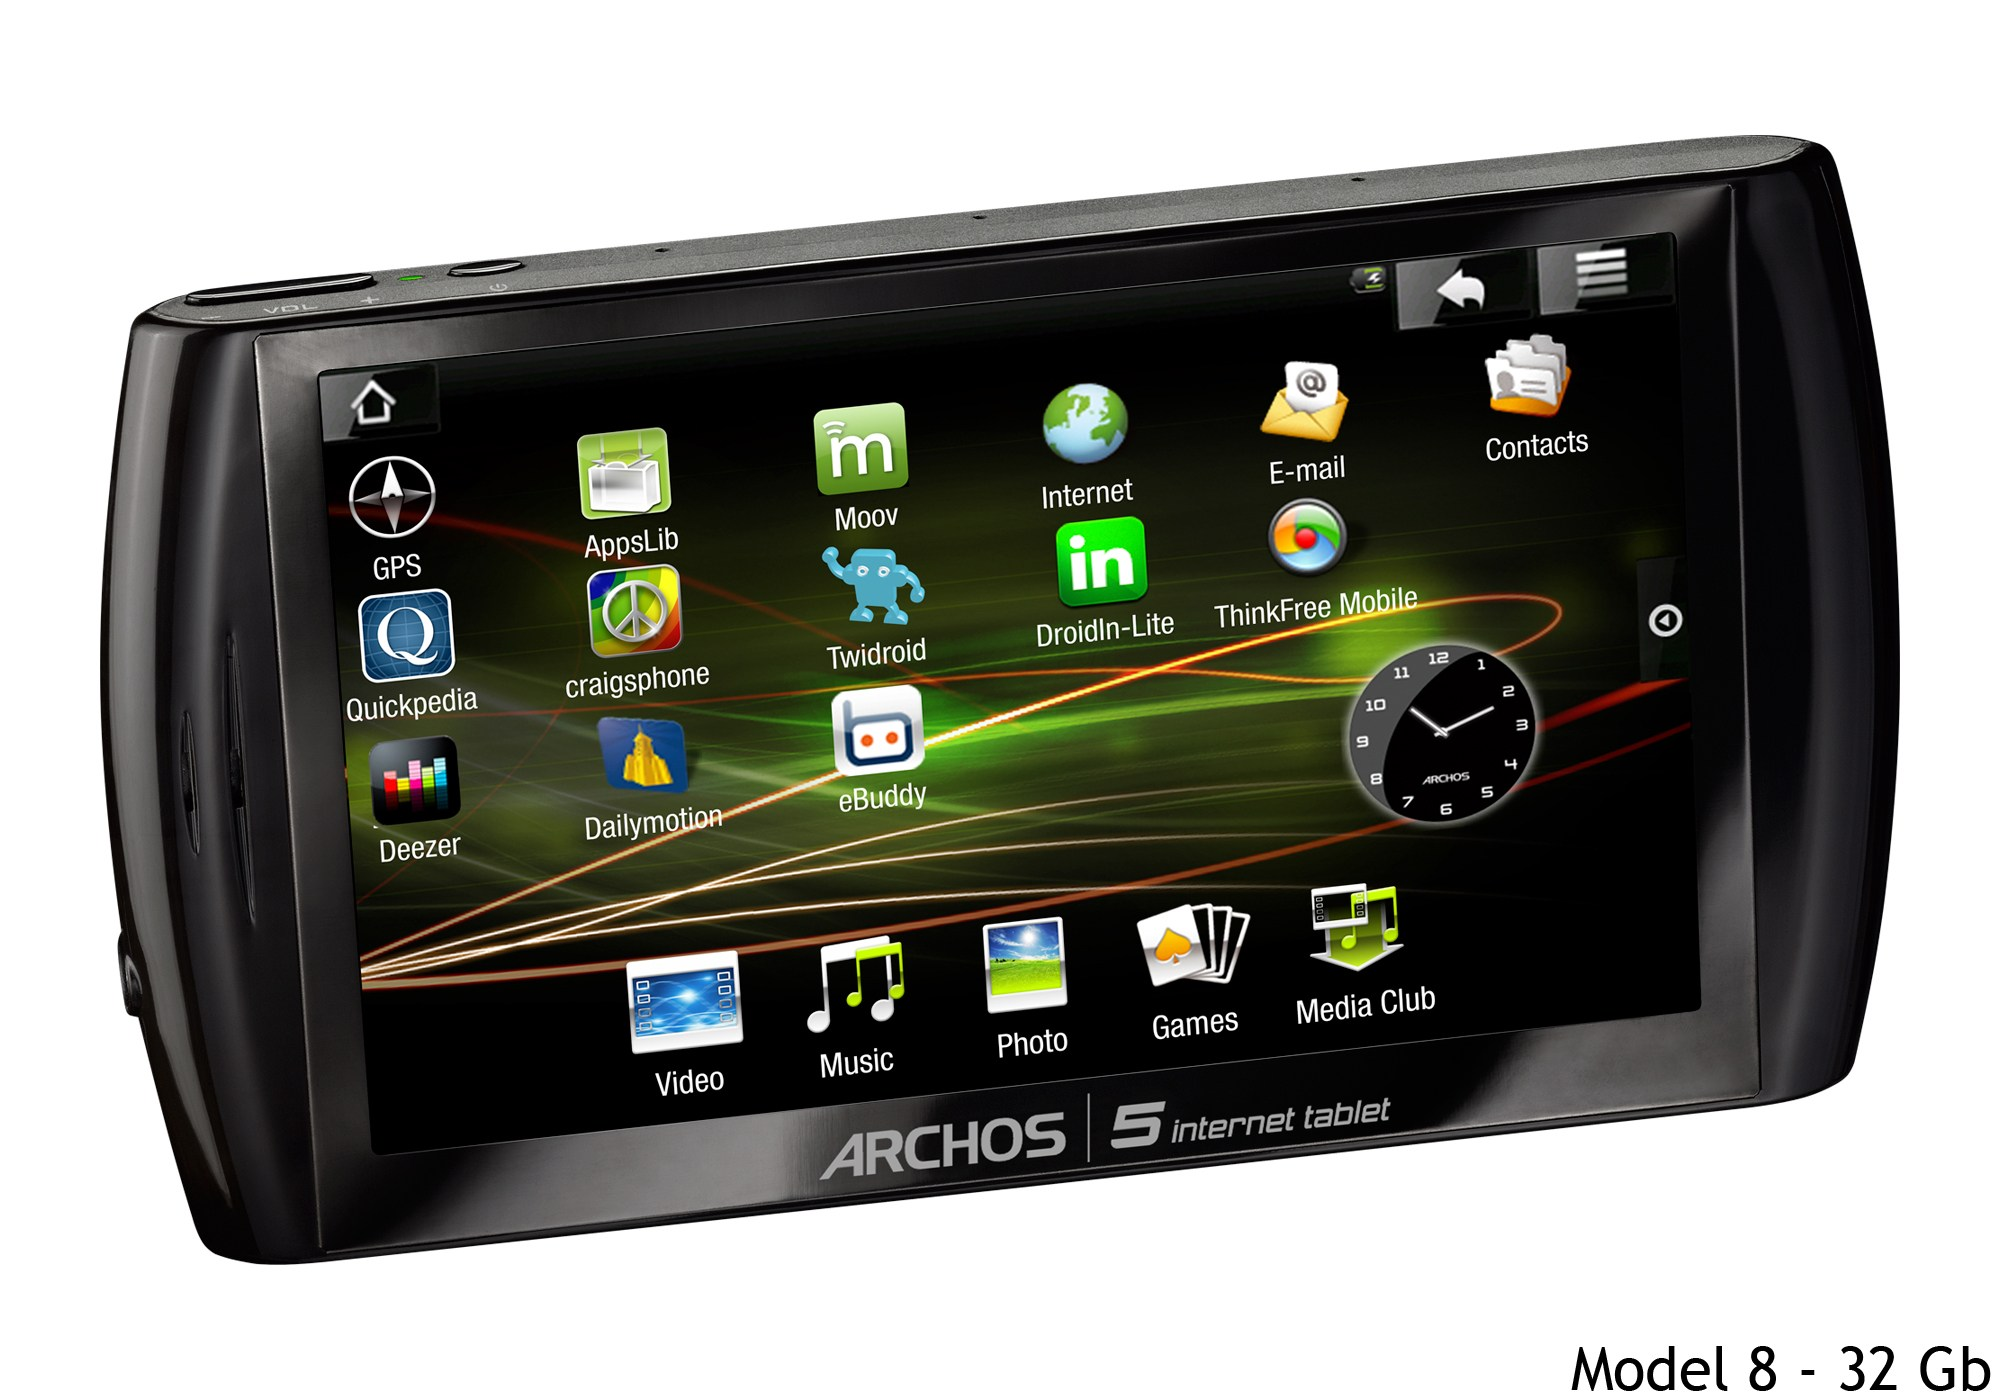 Archos annonce officiellement Archos 5 Internet Tablet